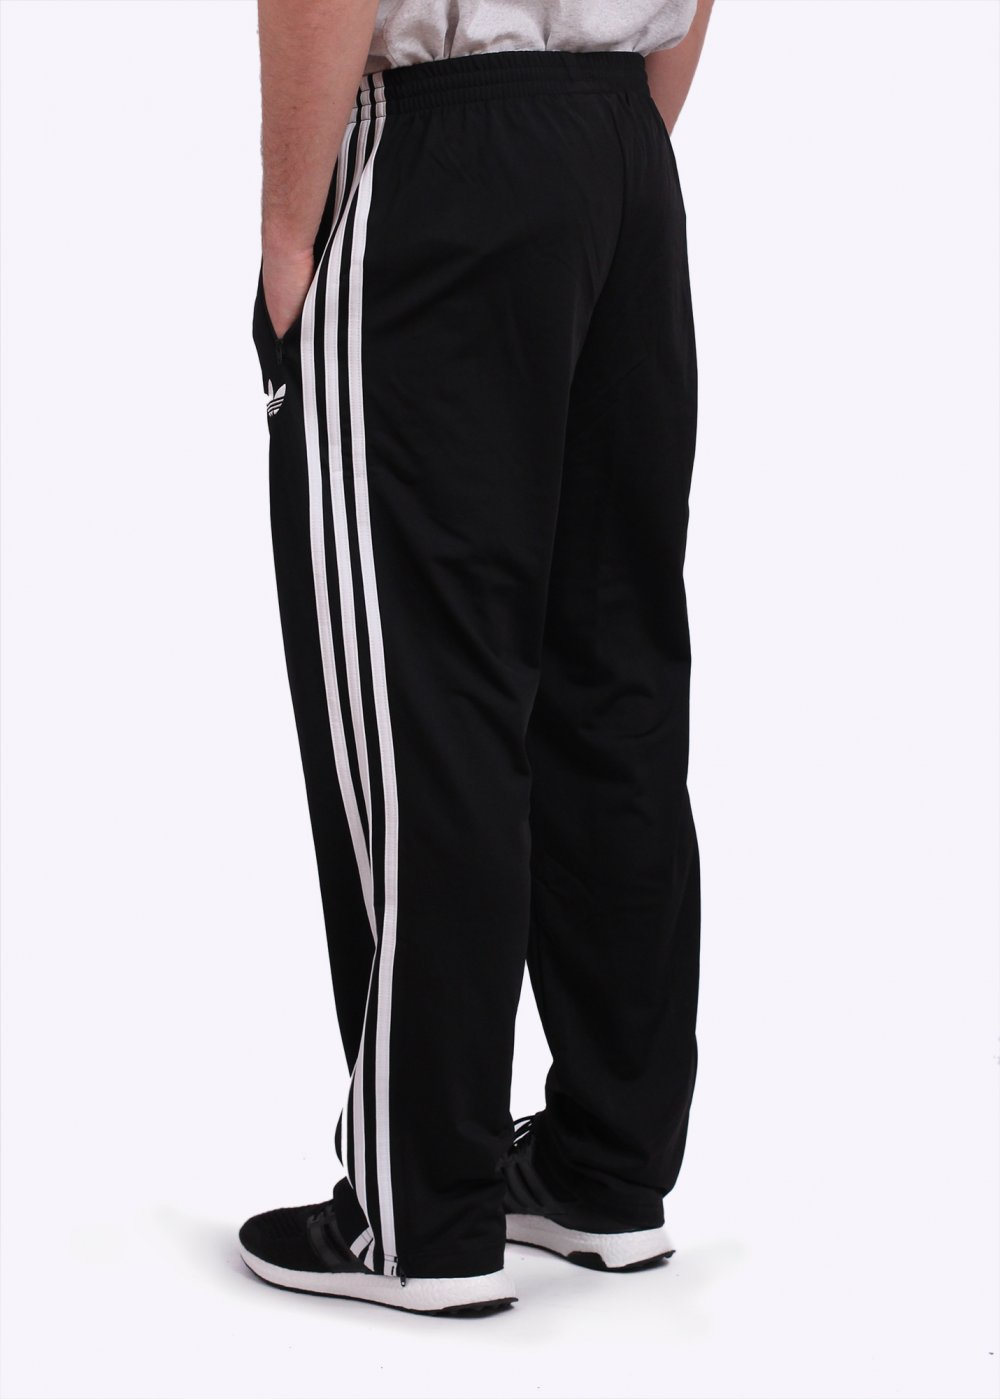 Adidas Originals Adi Firebird Track Pants Black White